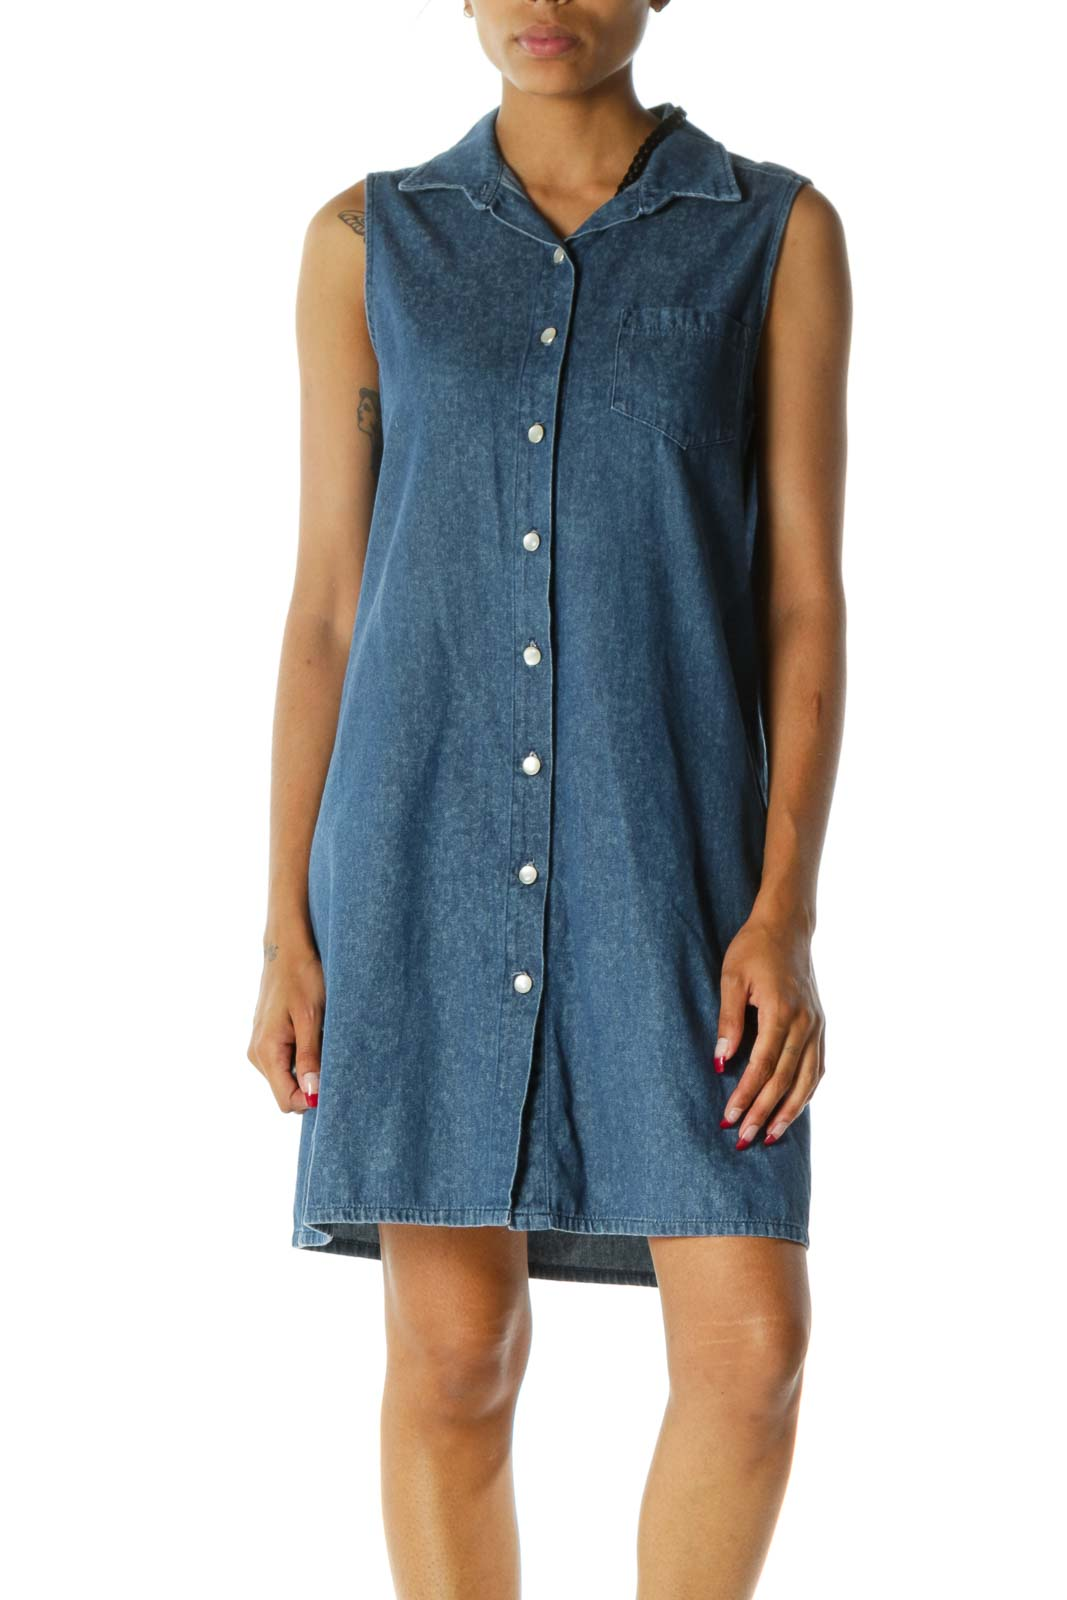 Blue Collared Buttoned One-Pocket Sleeveless Denim Dress